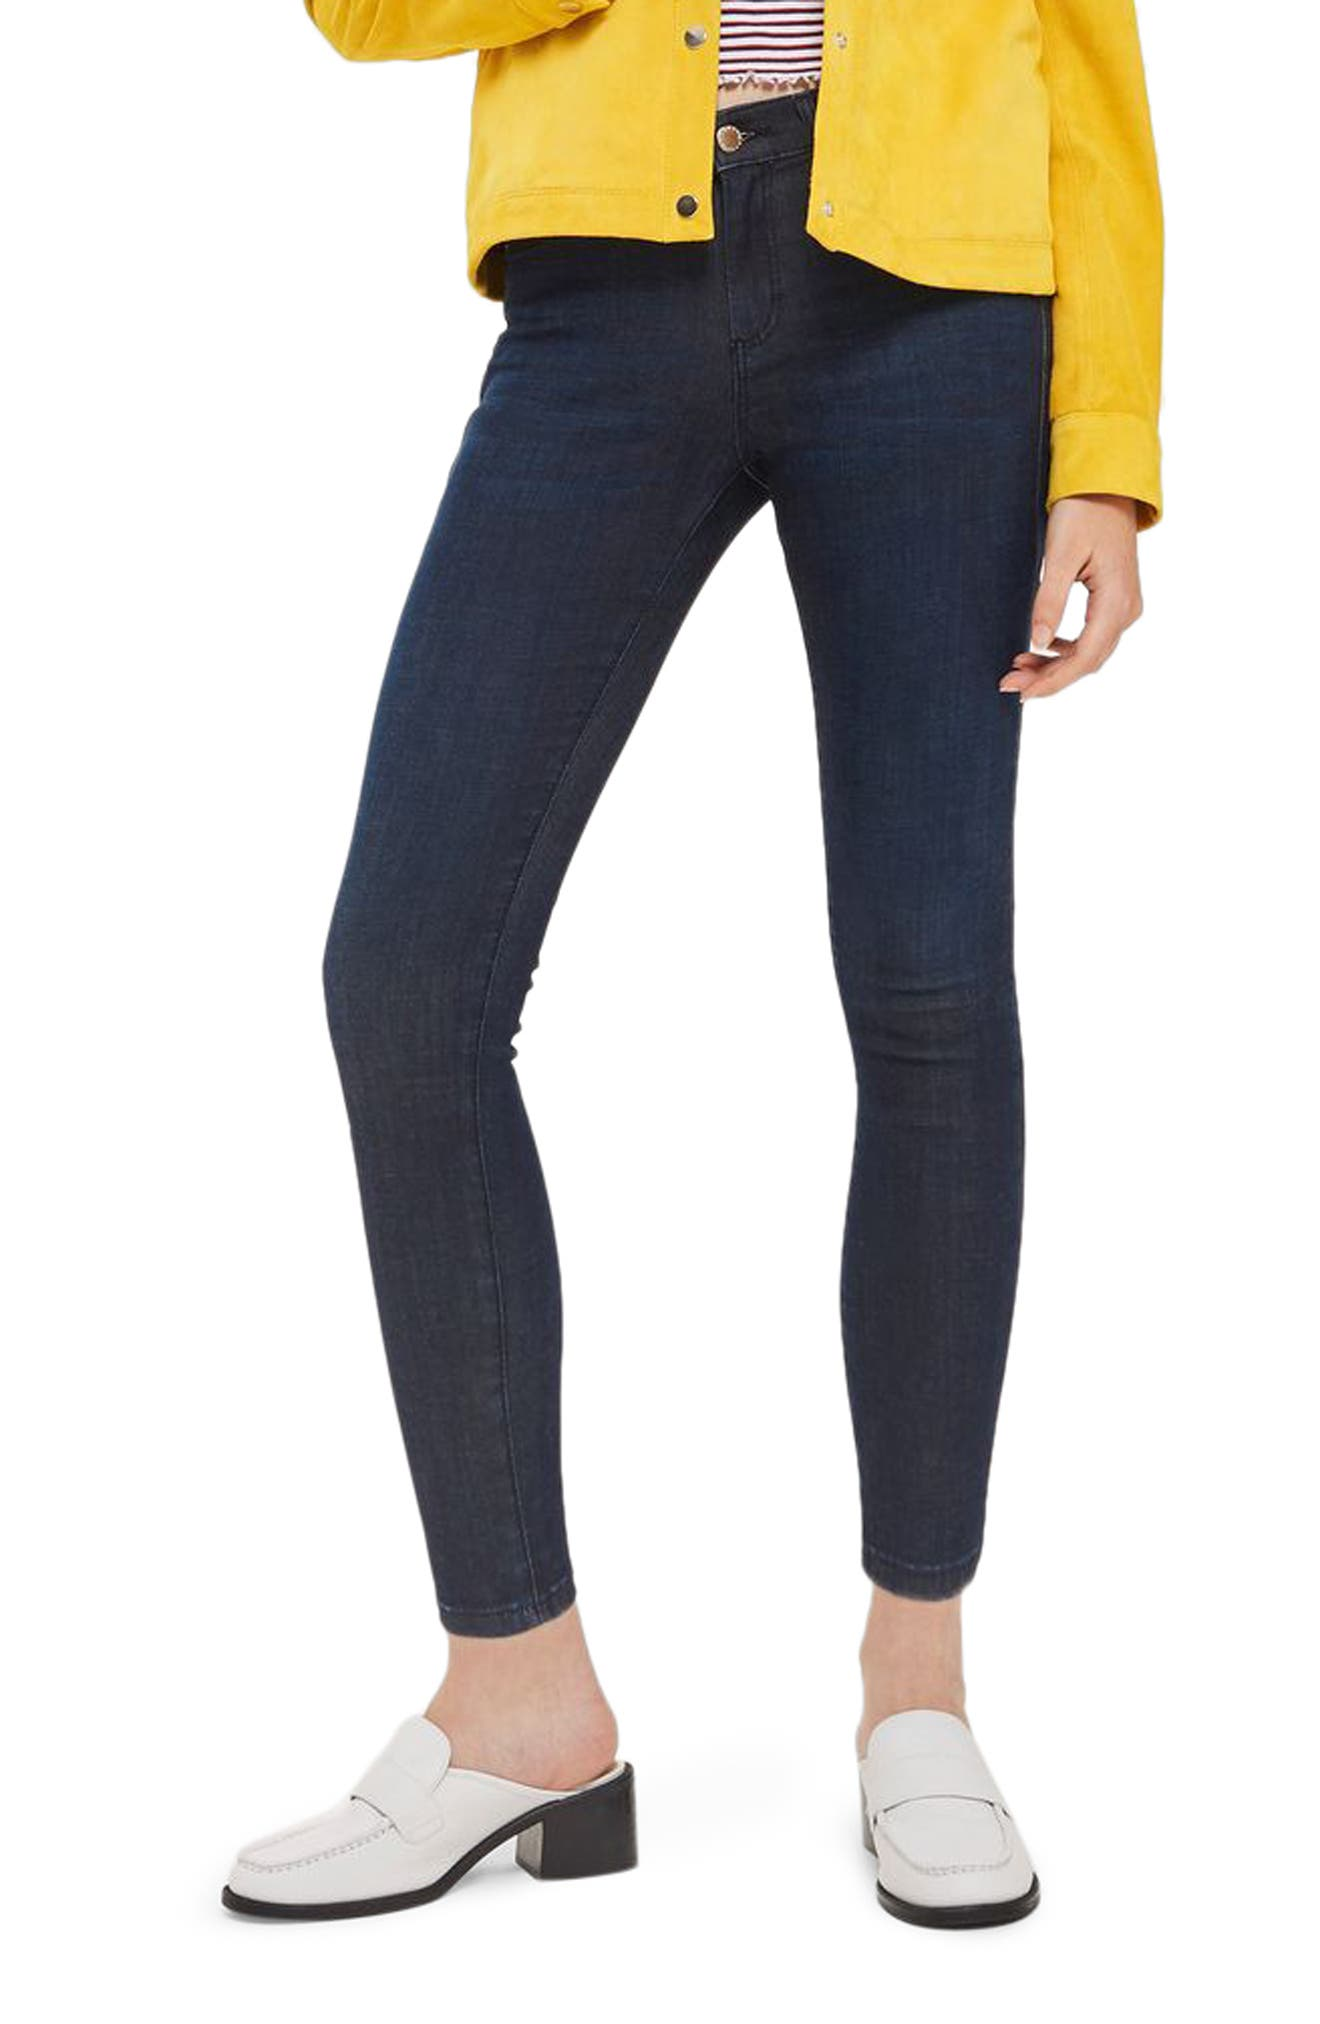 Leigh Skinny Ankle Jeans,                             Main thumbnail 1, color,                             Dark Indigo